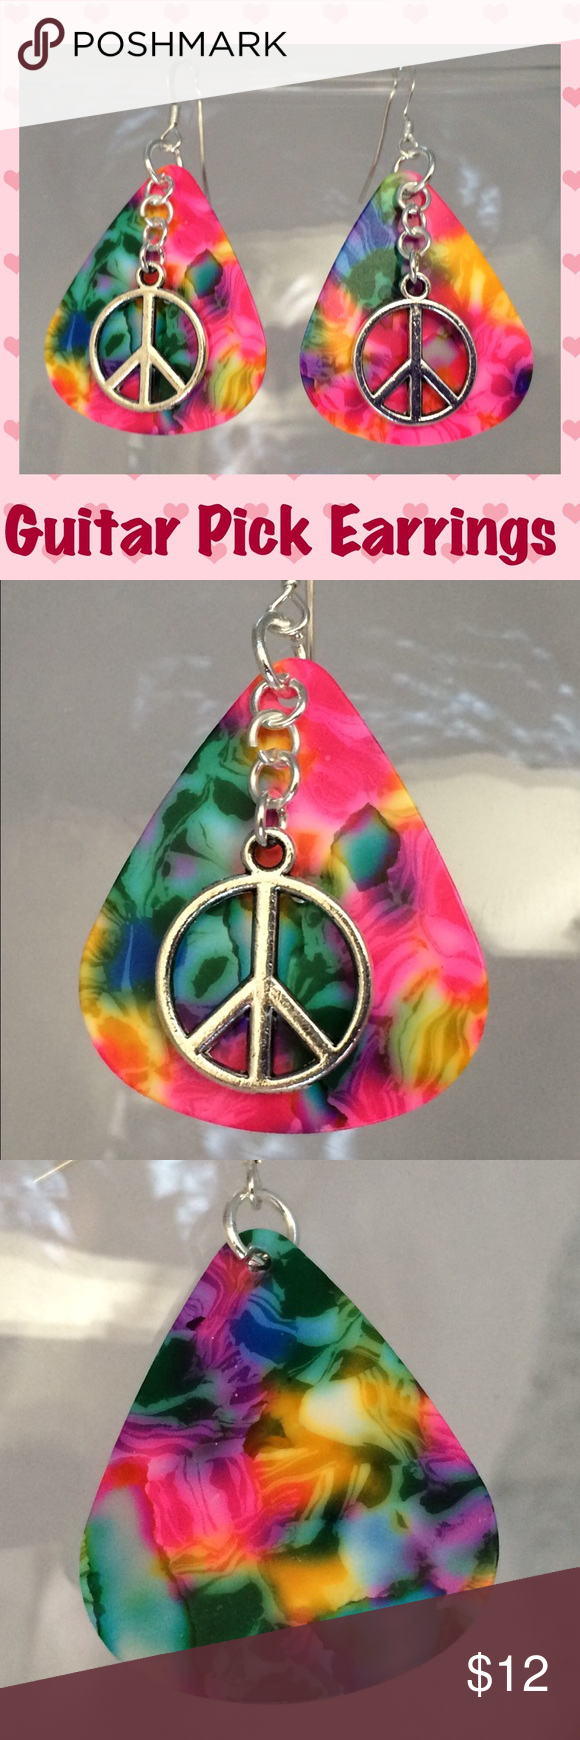 Download COMING SOON🚫Guitar Pick Peace Sign Earrings (With images ...